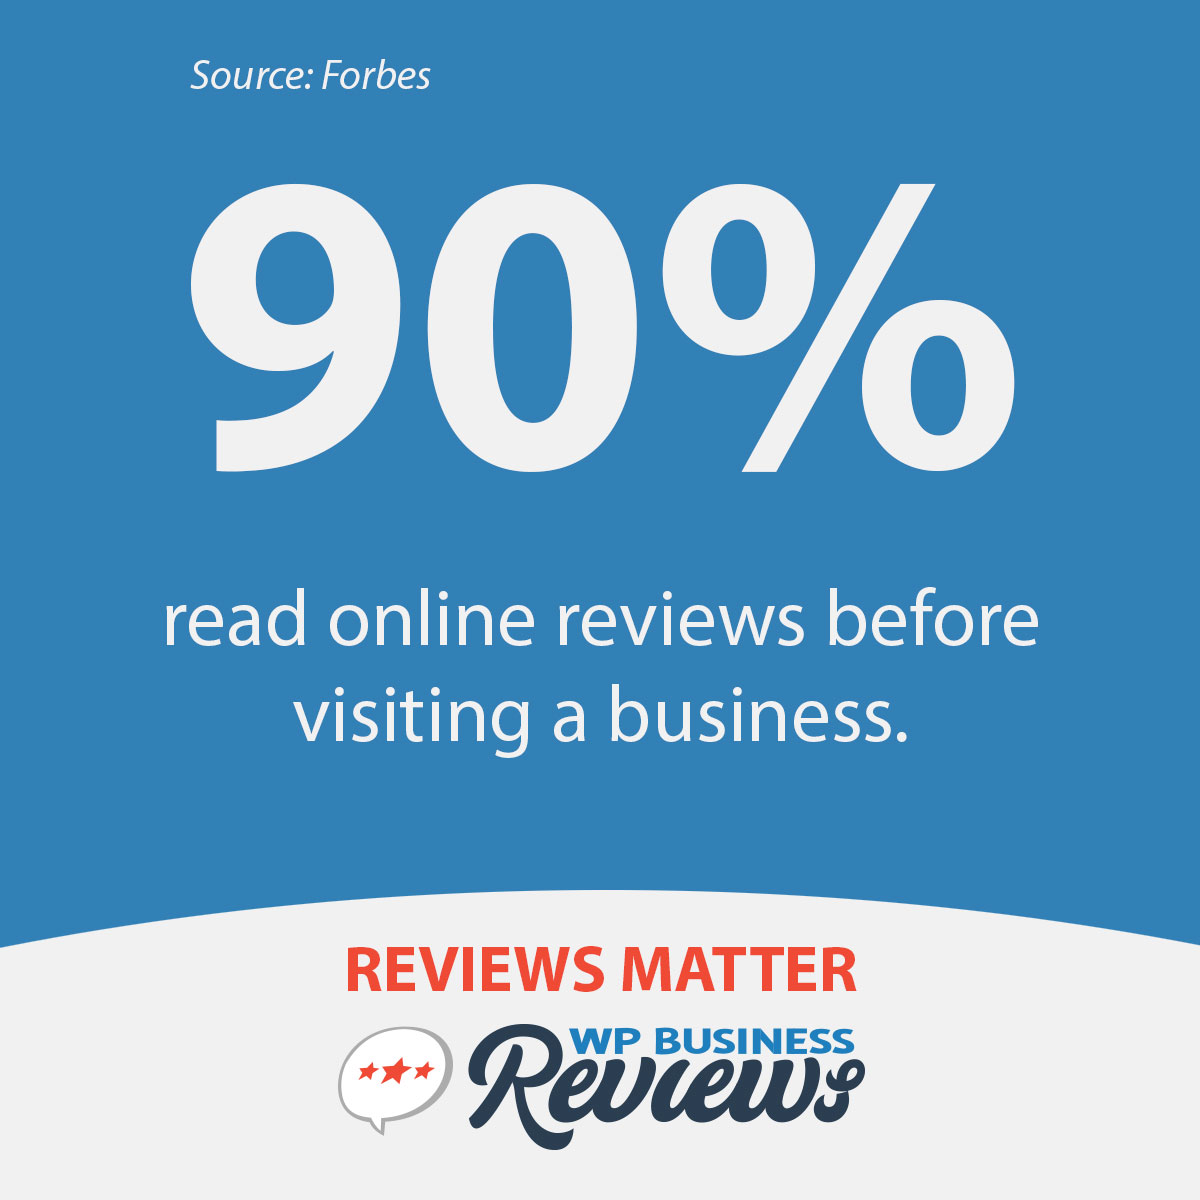 90% of people read online reviews before visiting a business, says Podium.